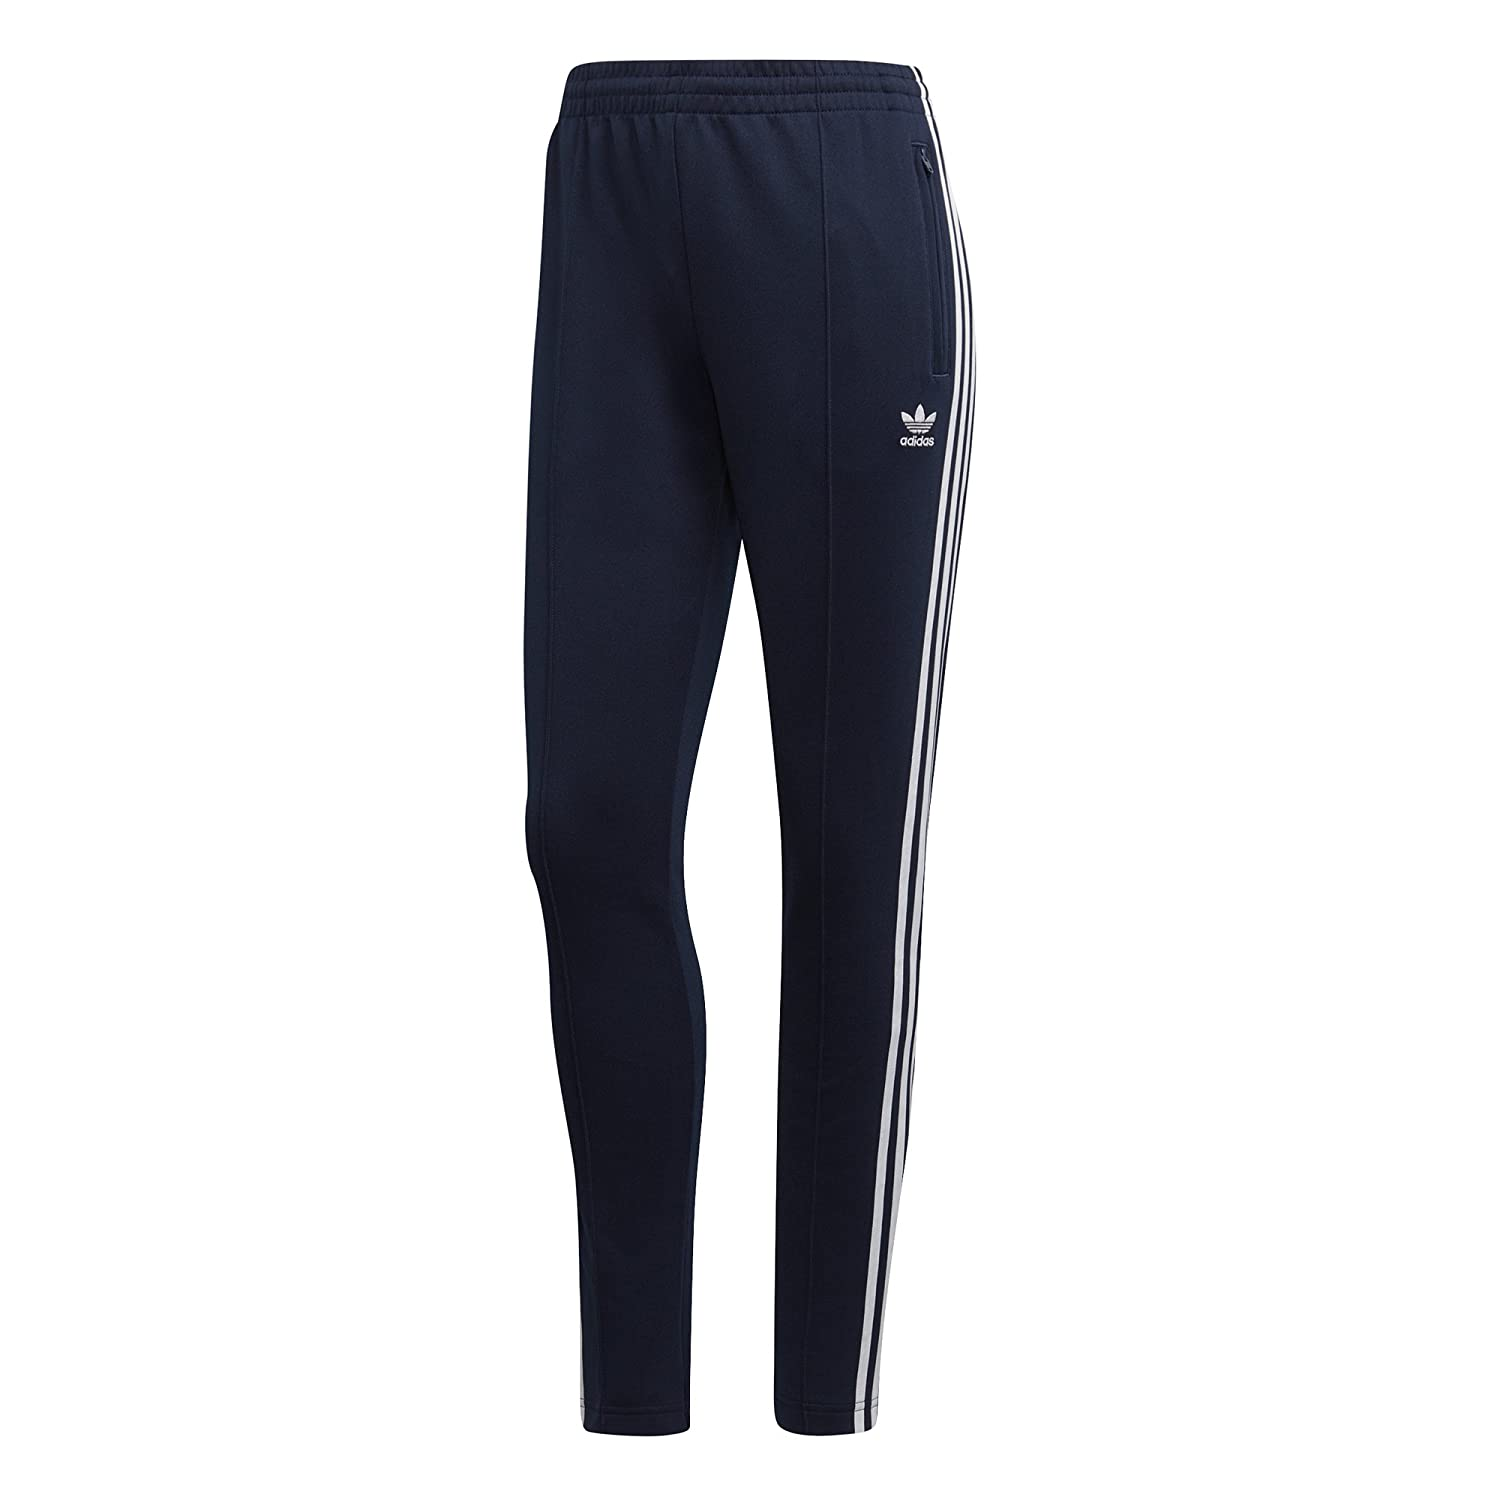 77e2dfd5629 adidas Originals Women's Superstar Trackpants at Amazon Women's Clothing  store: